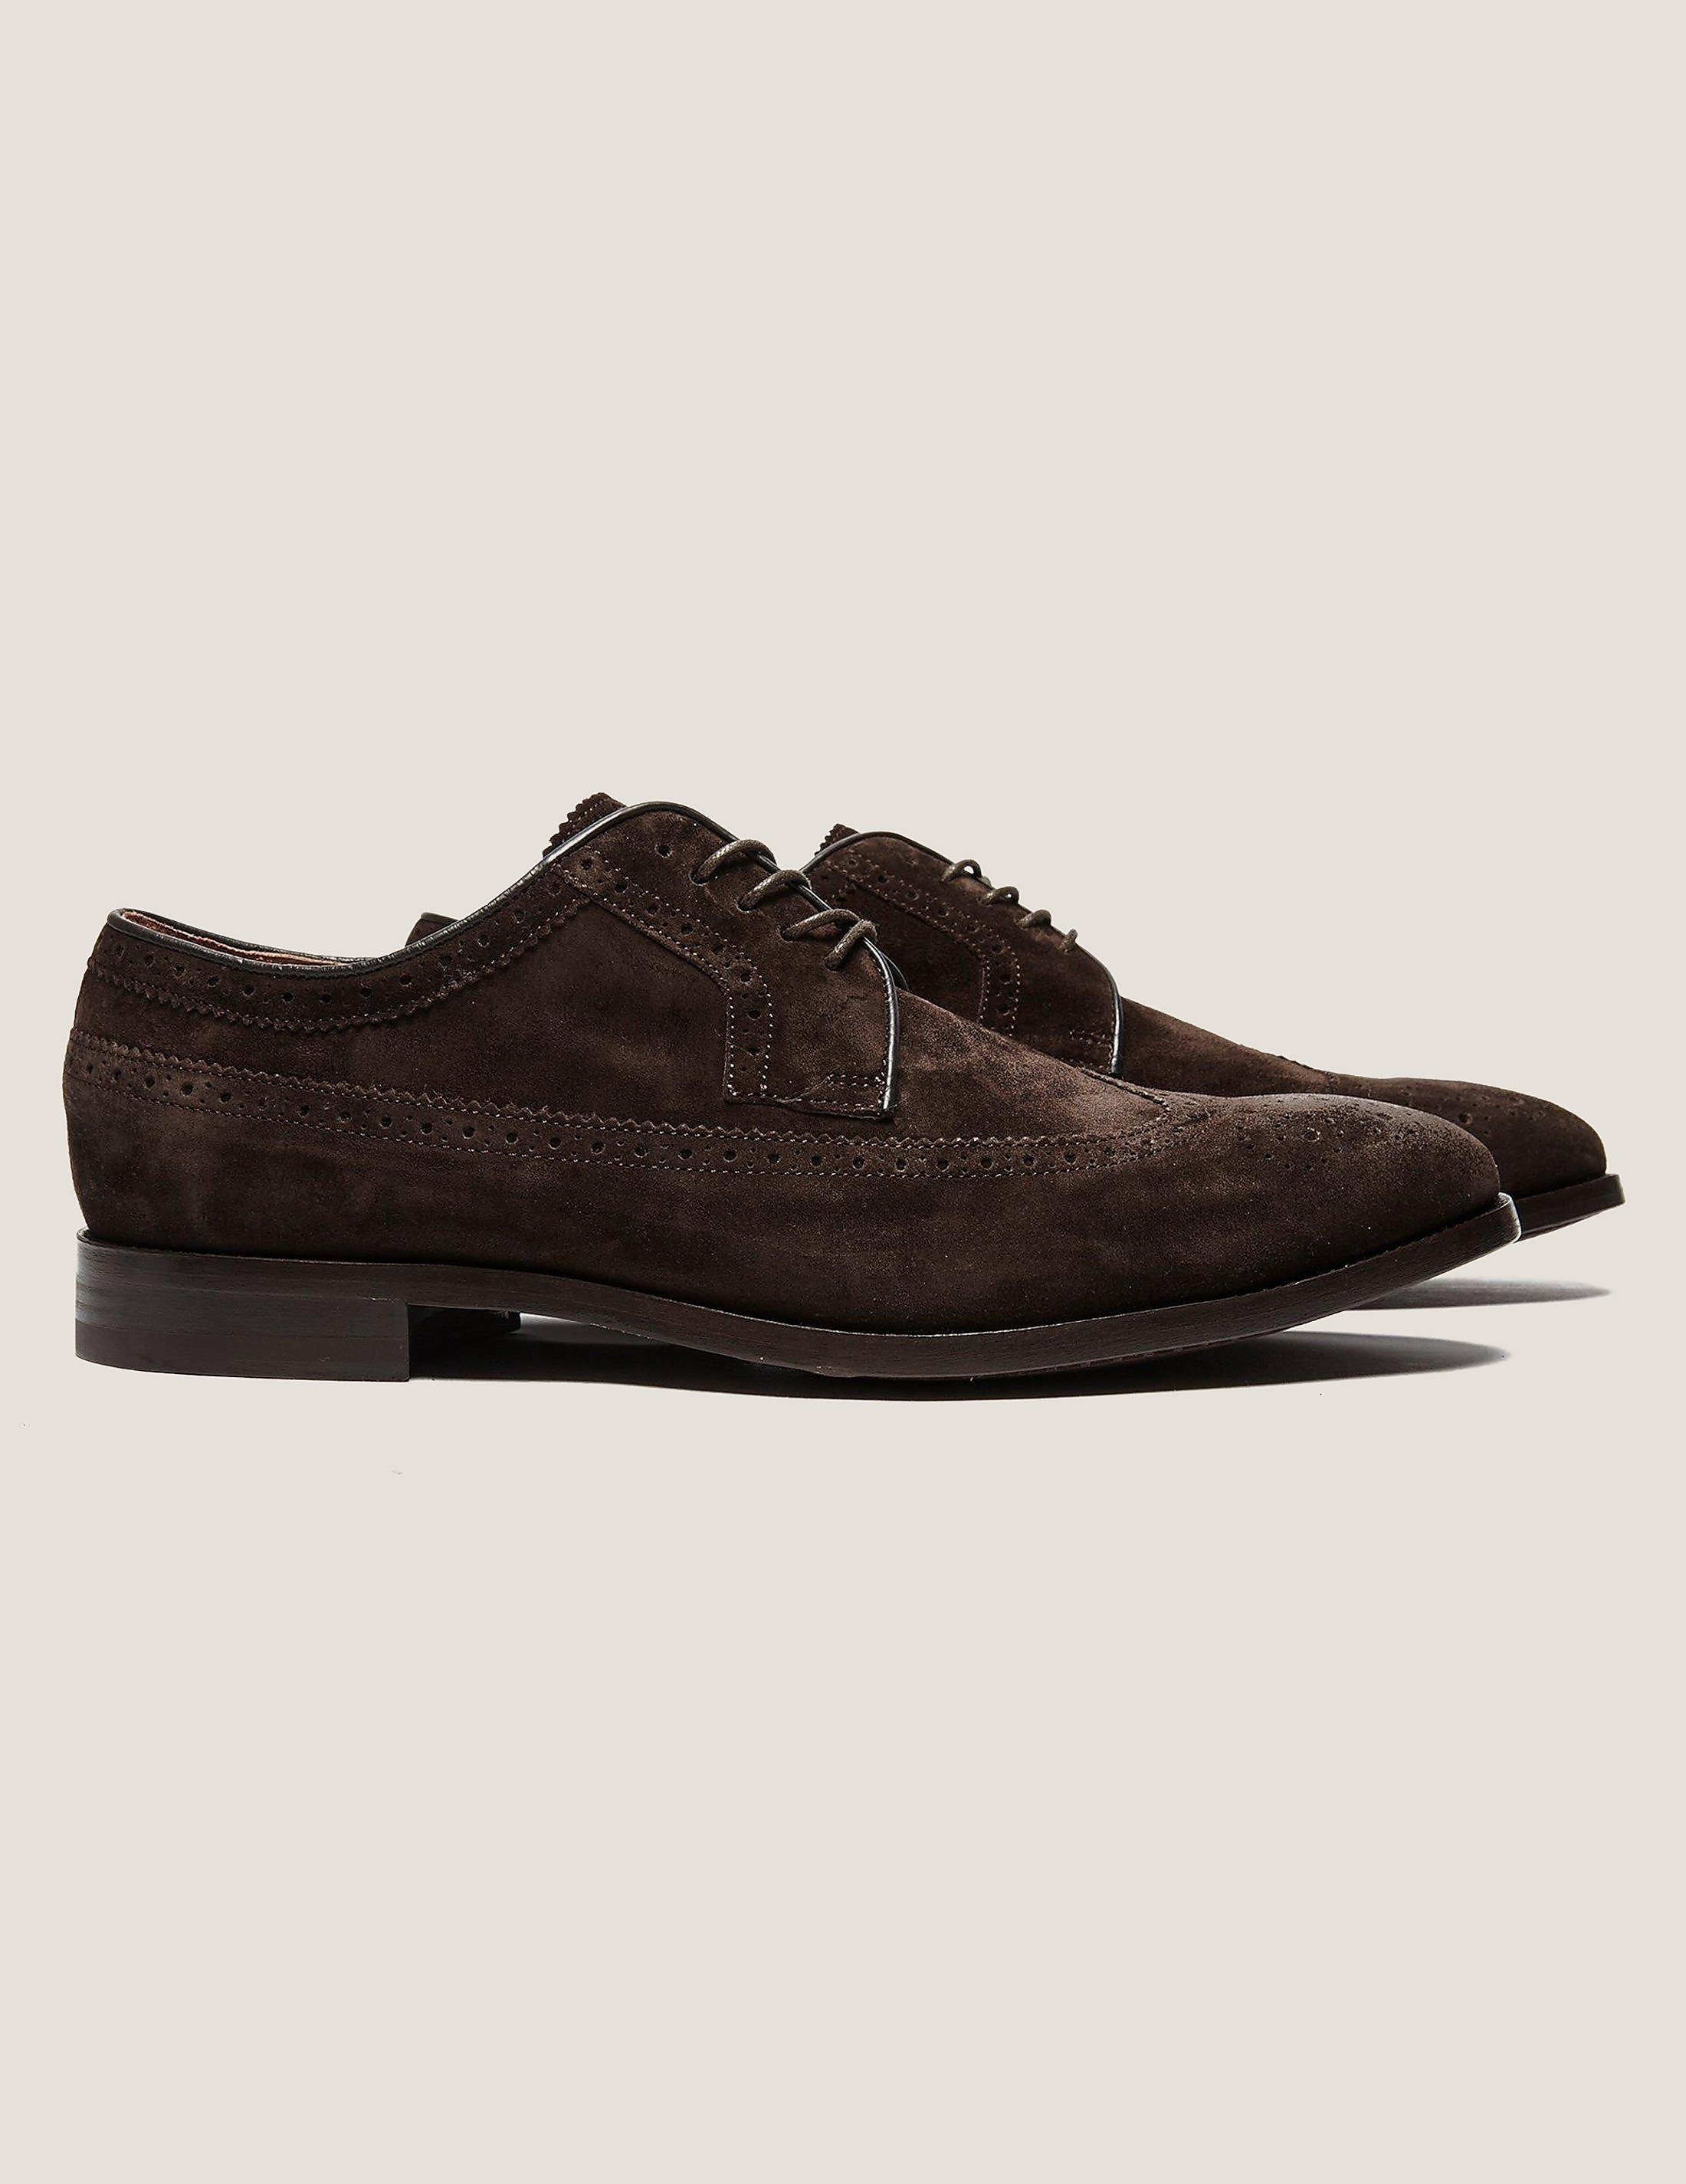 Paul Smith Talbot Brogues